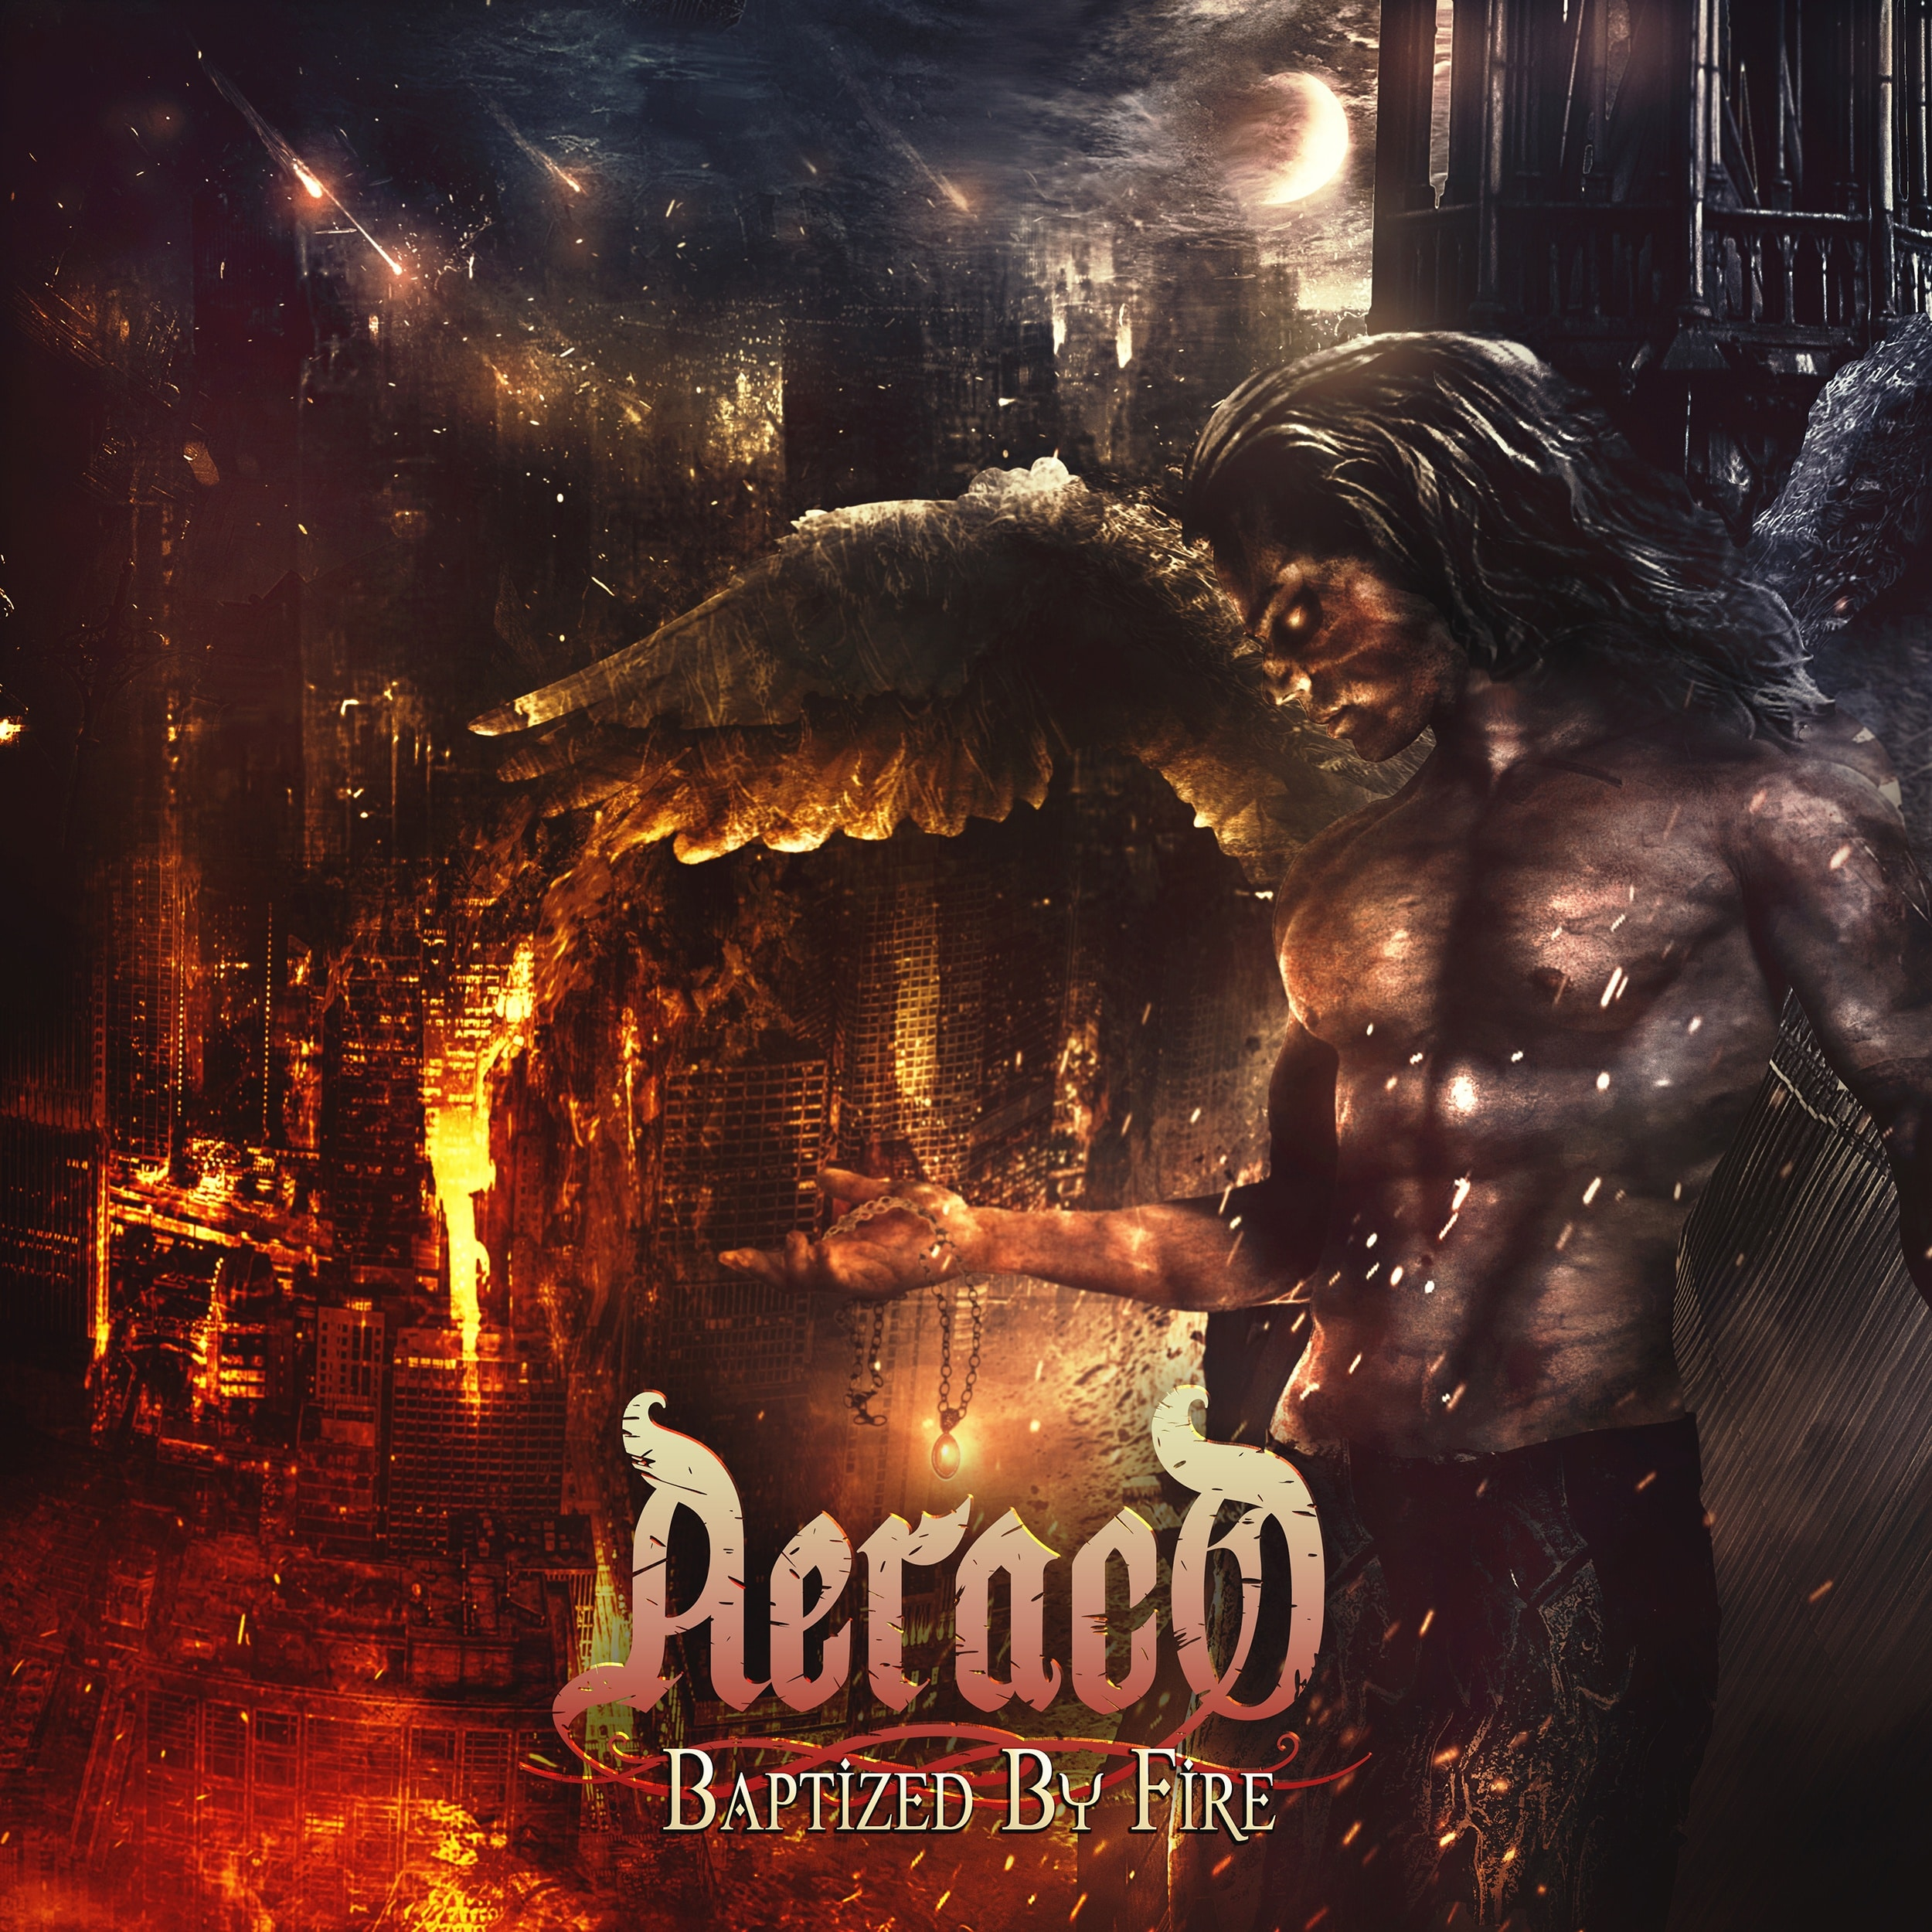 Aeraco – Baptized by Fire